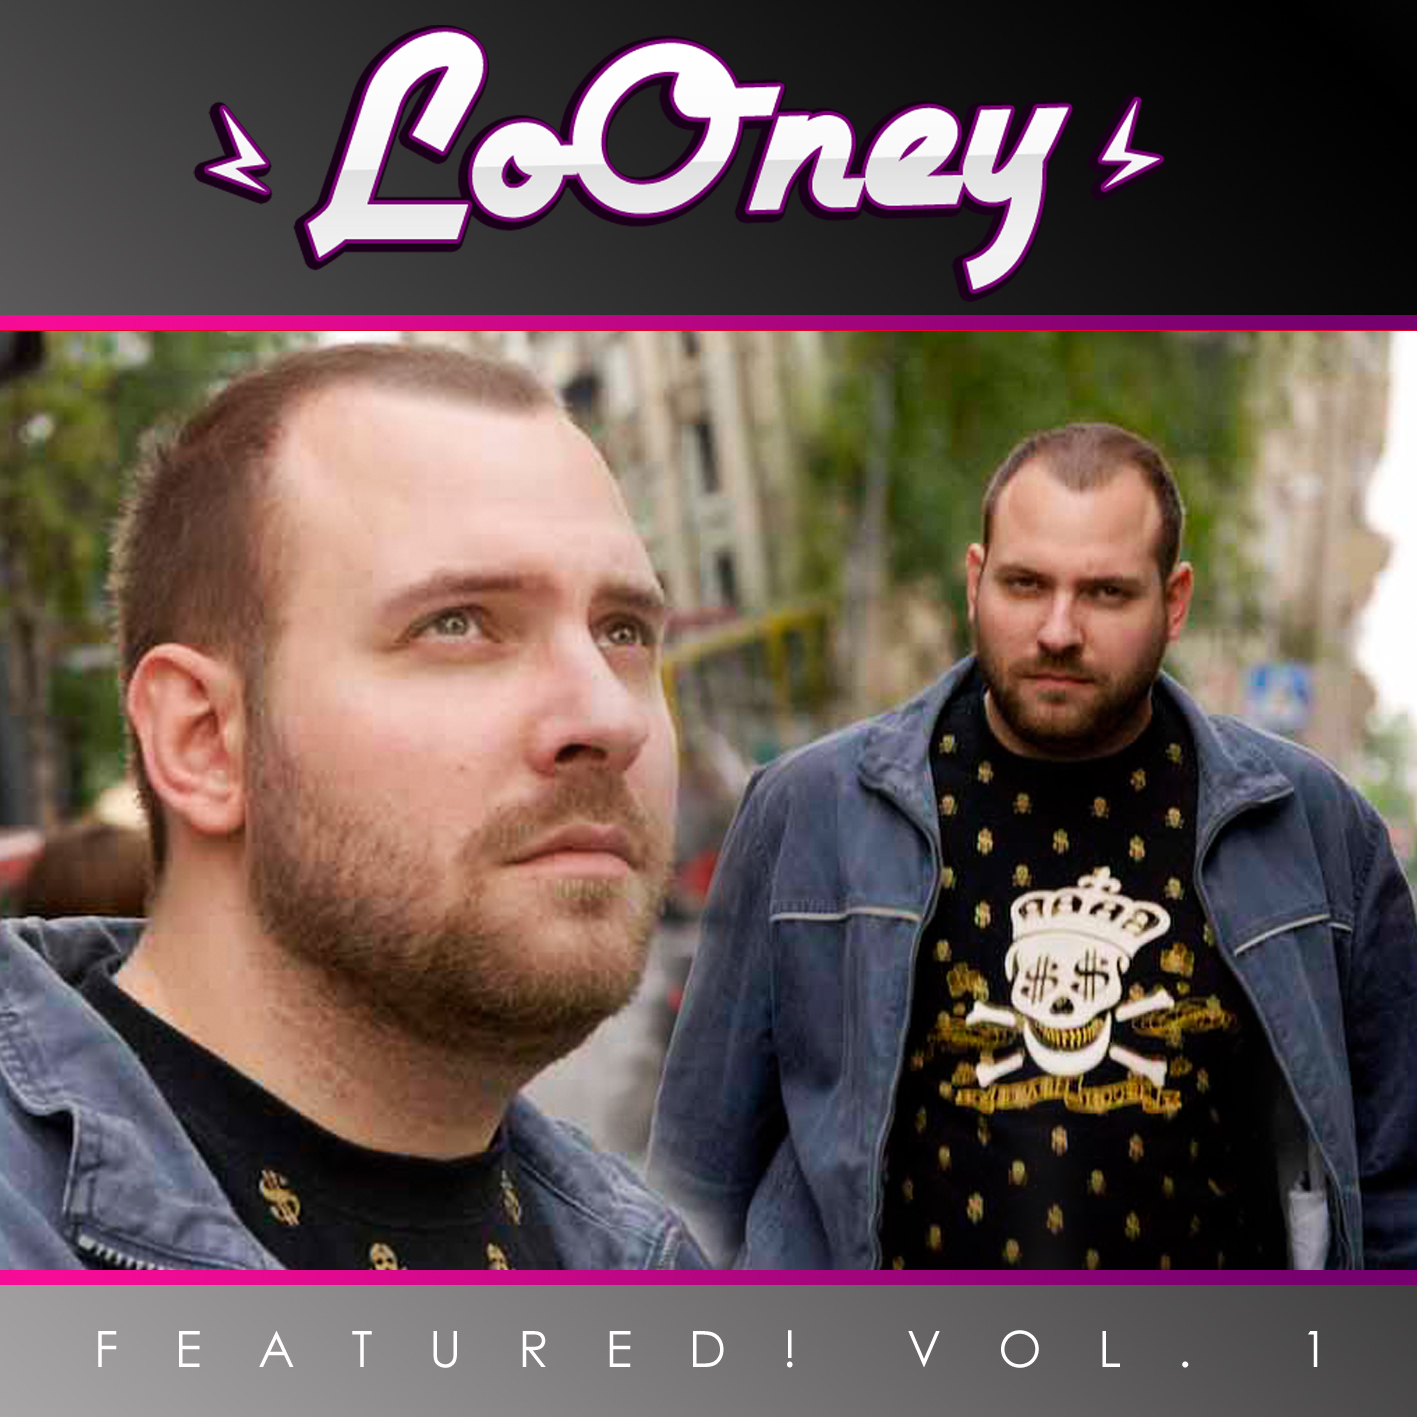 LoOney - Featured! Vol1